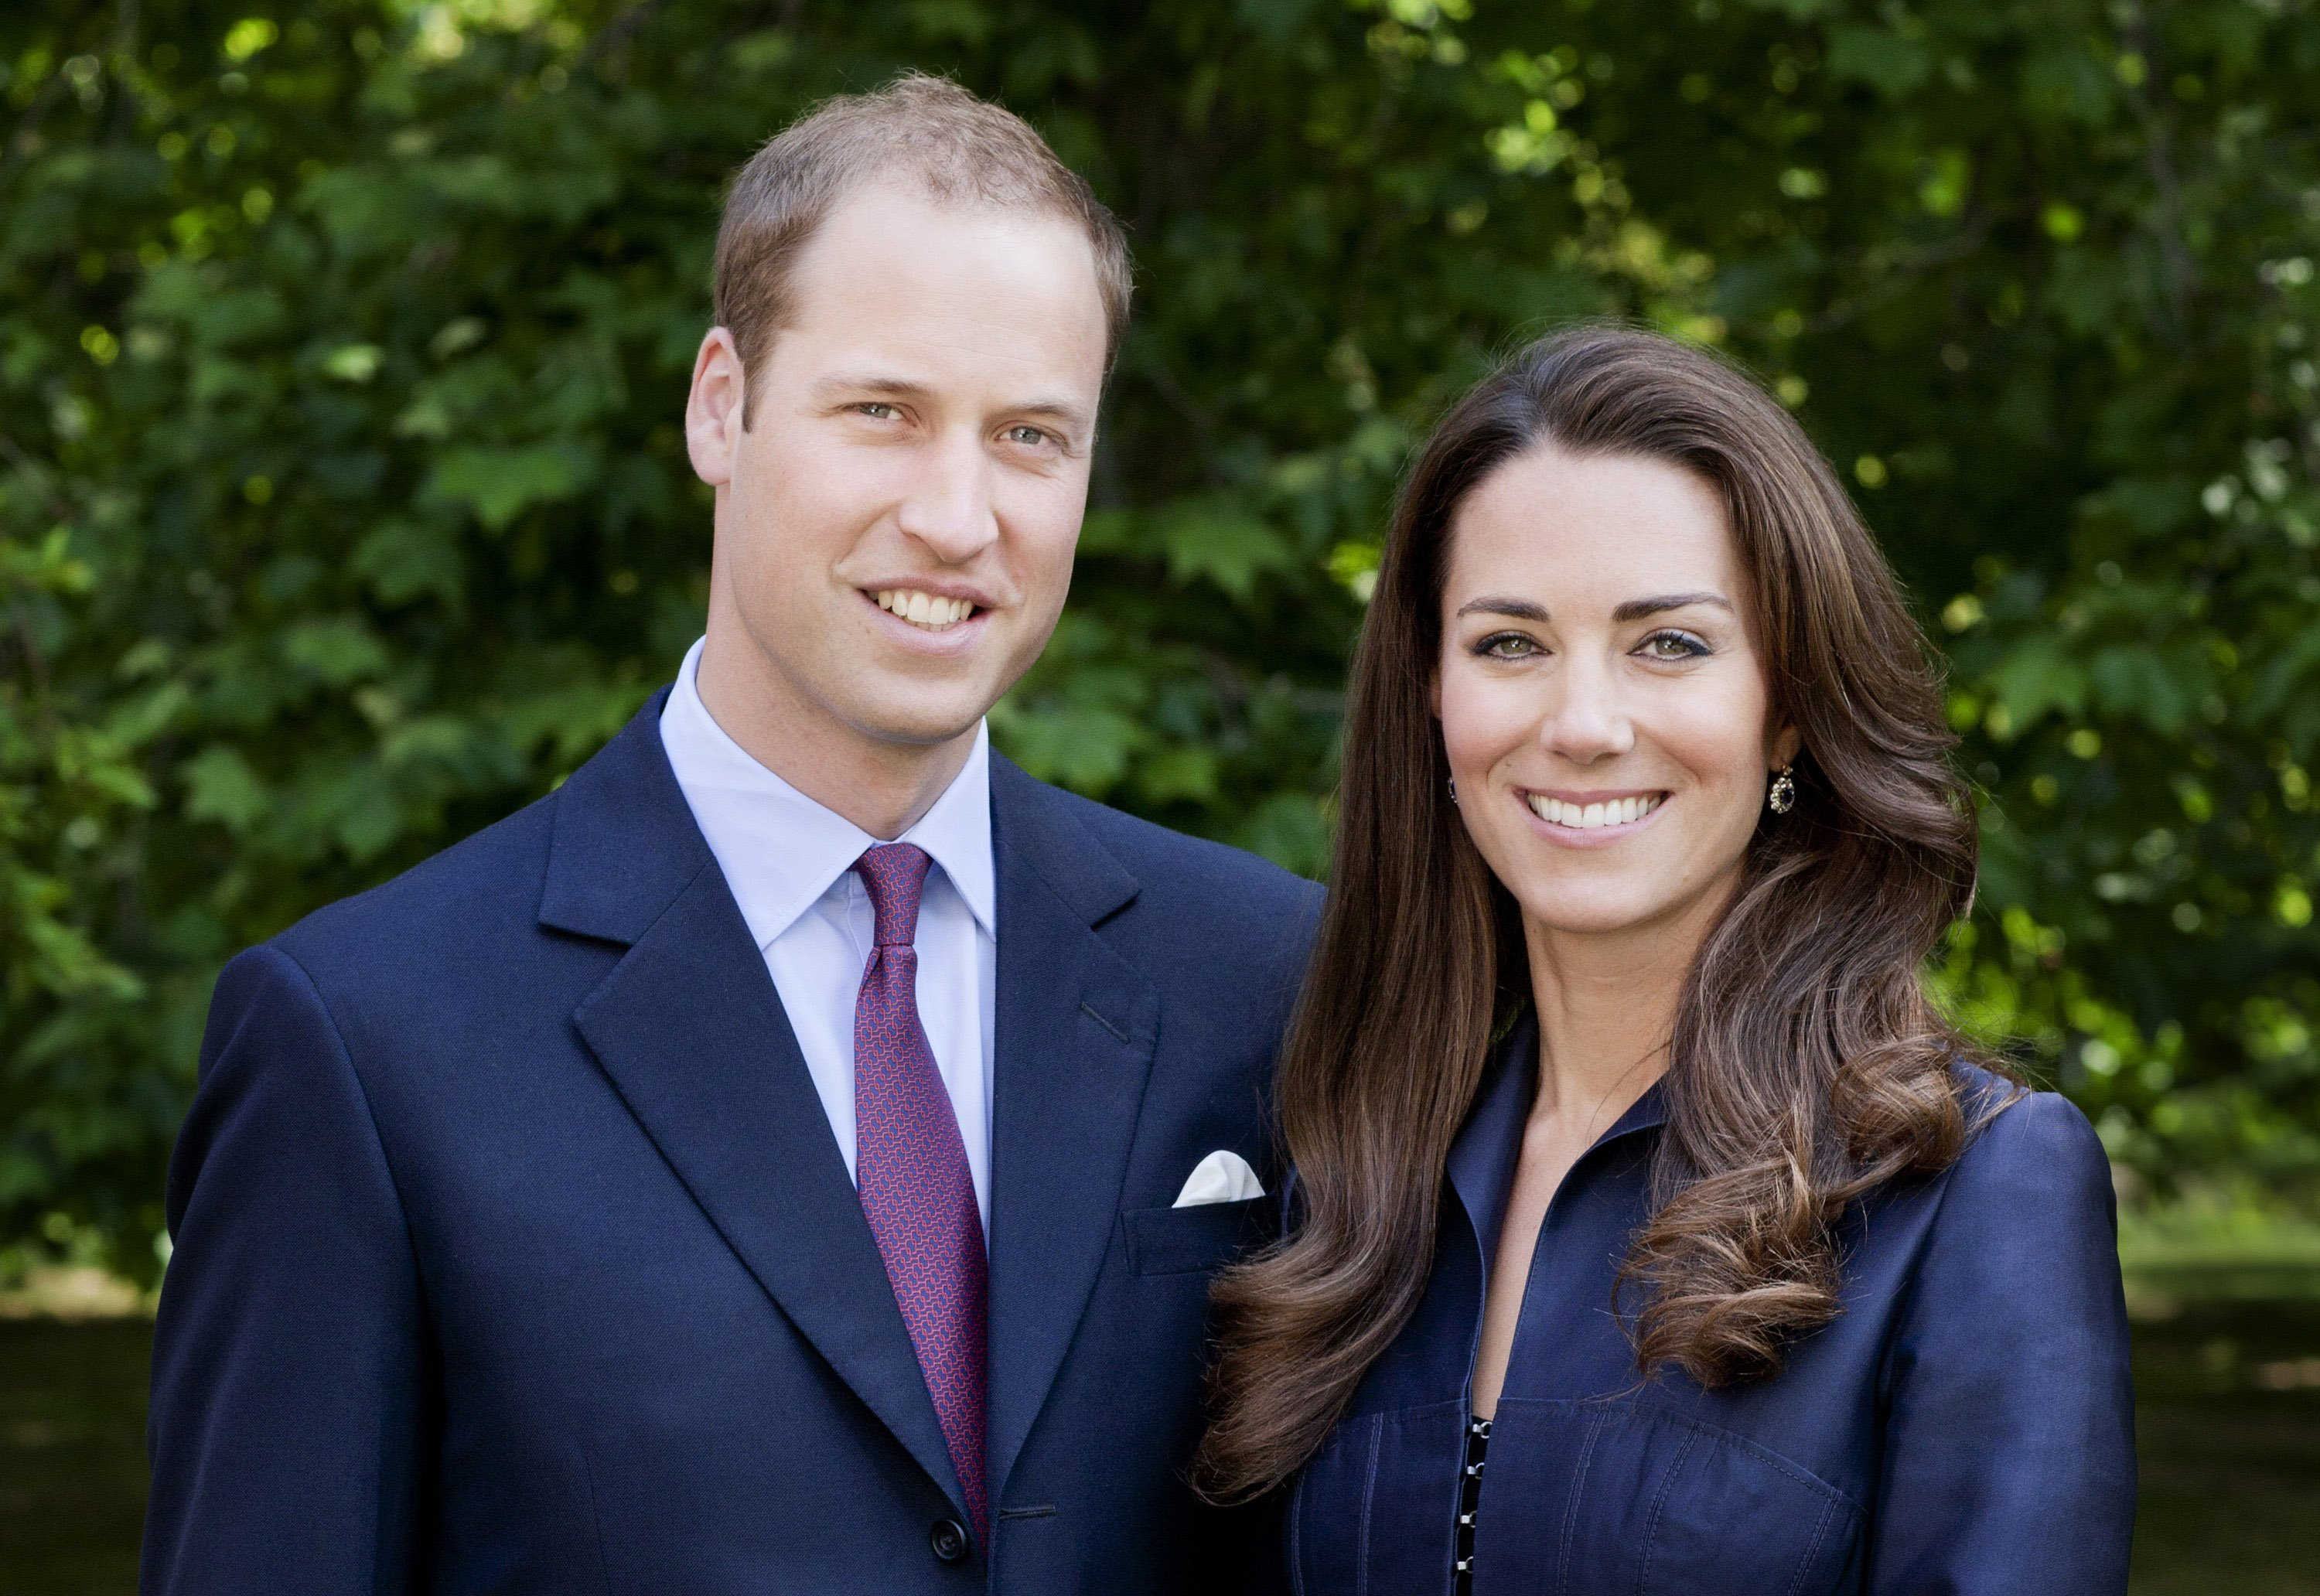 Prince William and Kate Middleton, pose for the official tour portrait for their trip to Canada and California in the Garden's of Clarence House on June 3, 2011 in London. England | Photo: Getty Images